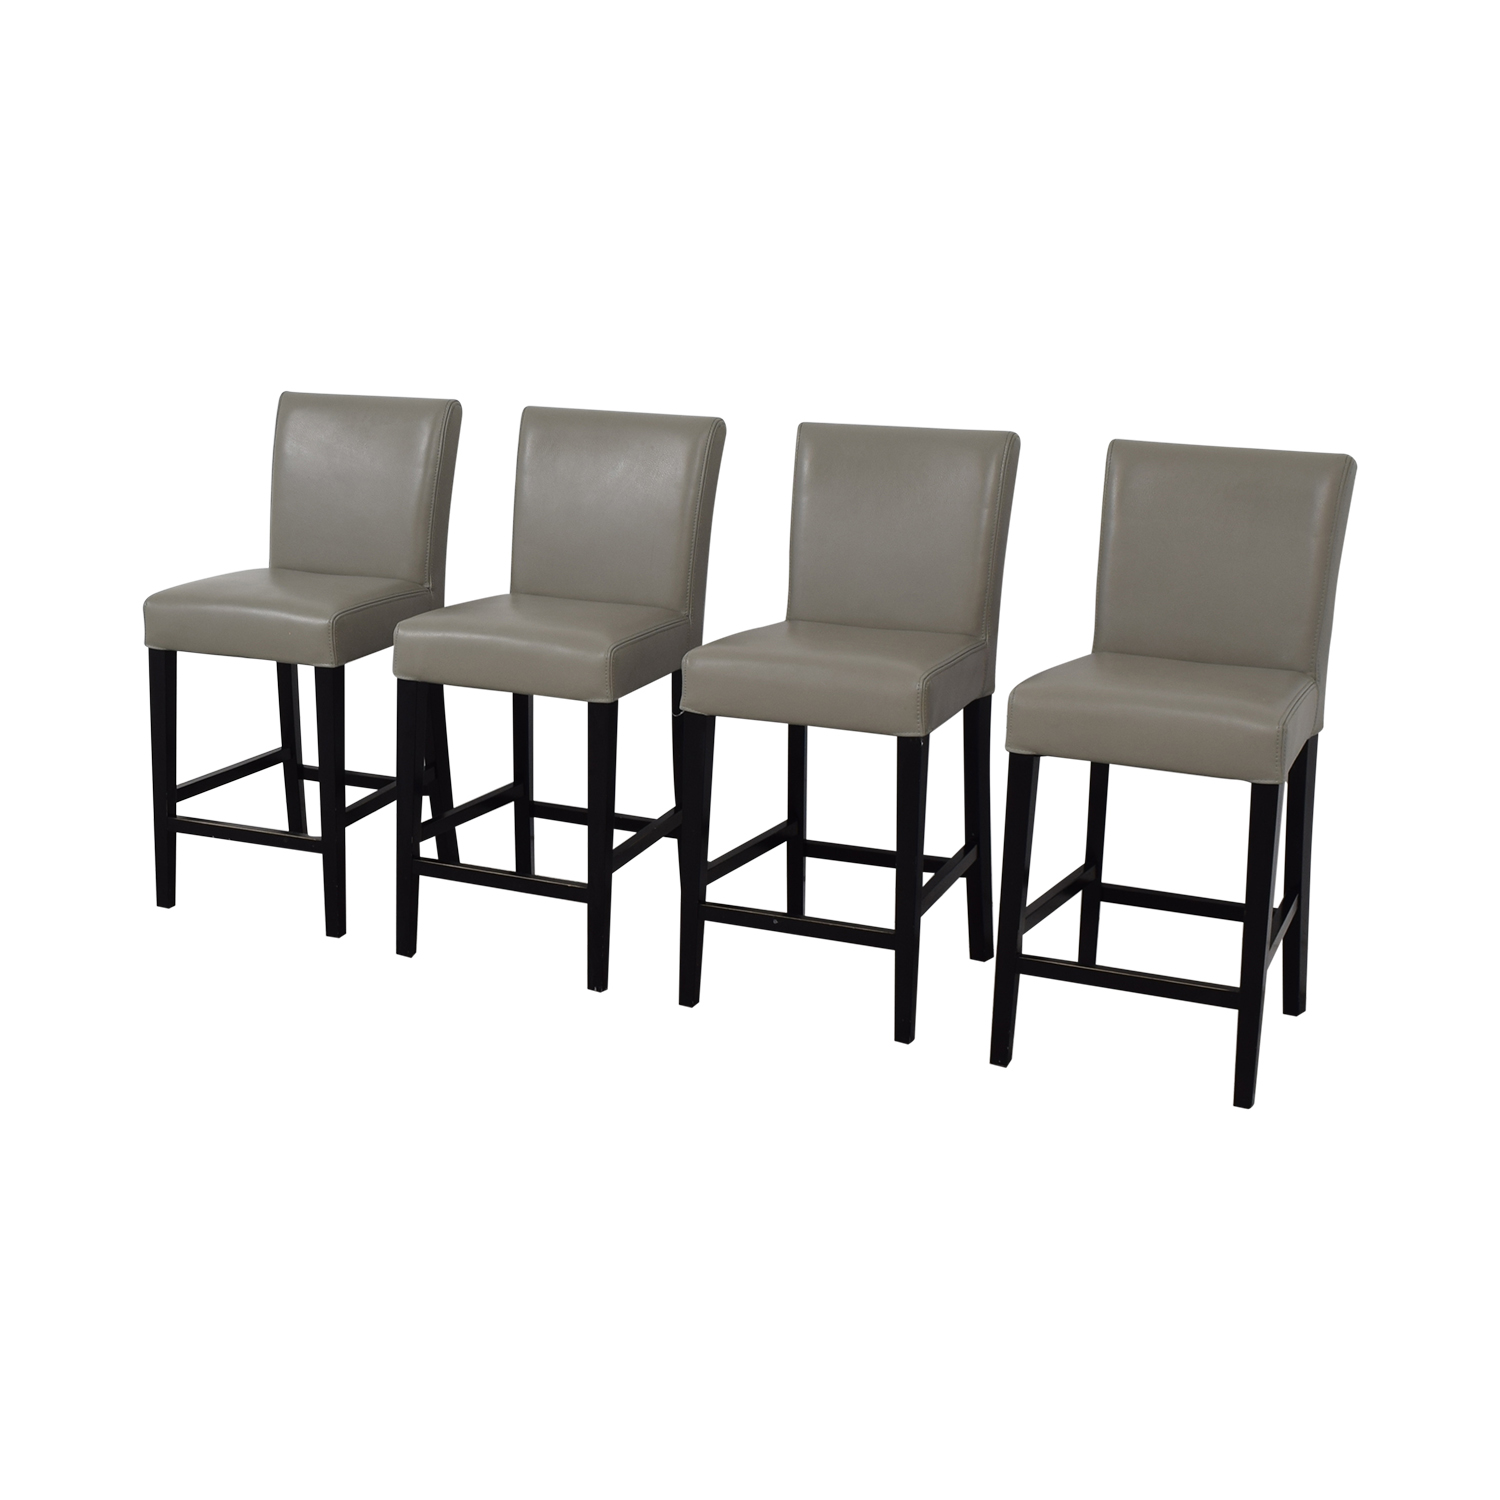 buy  Grey Leather Stools online